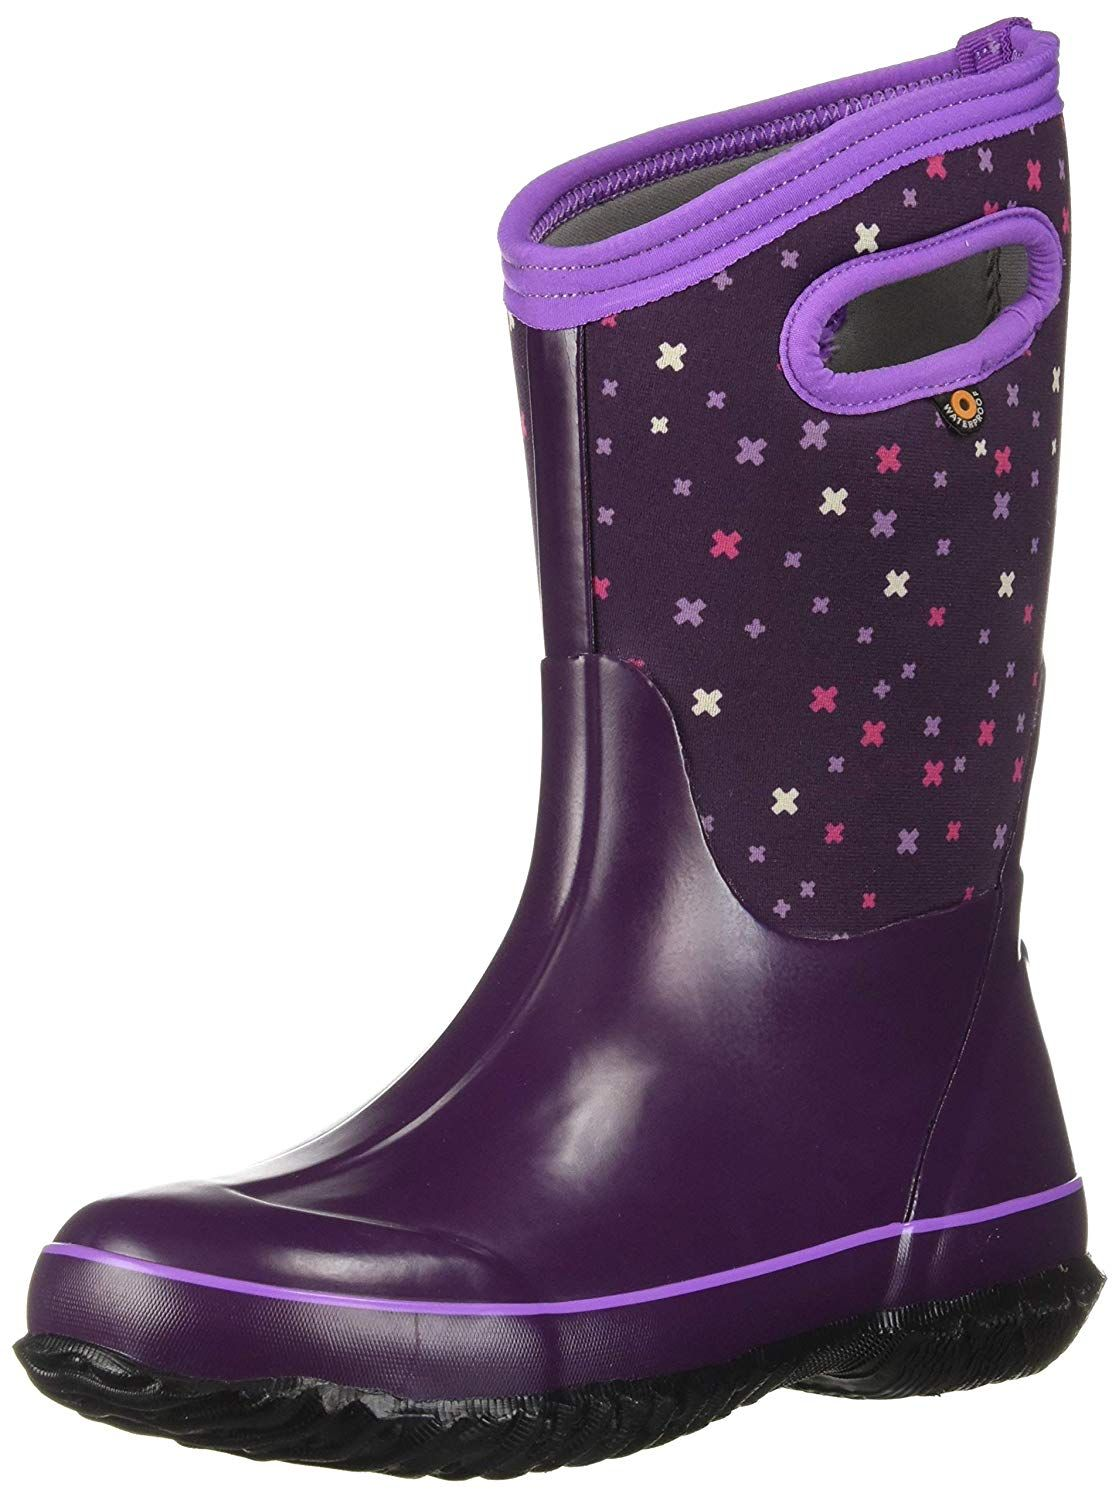 Bogs Kids Classic High Waterproof Insulated Rubber Rain And Winter Snow Boot For Boys Girls And Toddlers Mult Winter Snow Boots Boots Waterproof Winter Boots